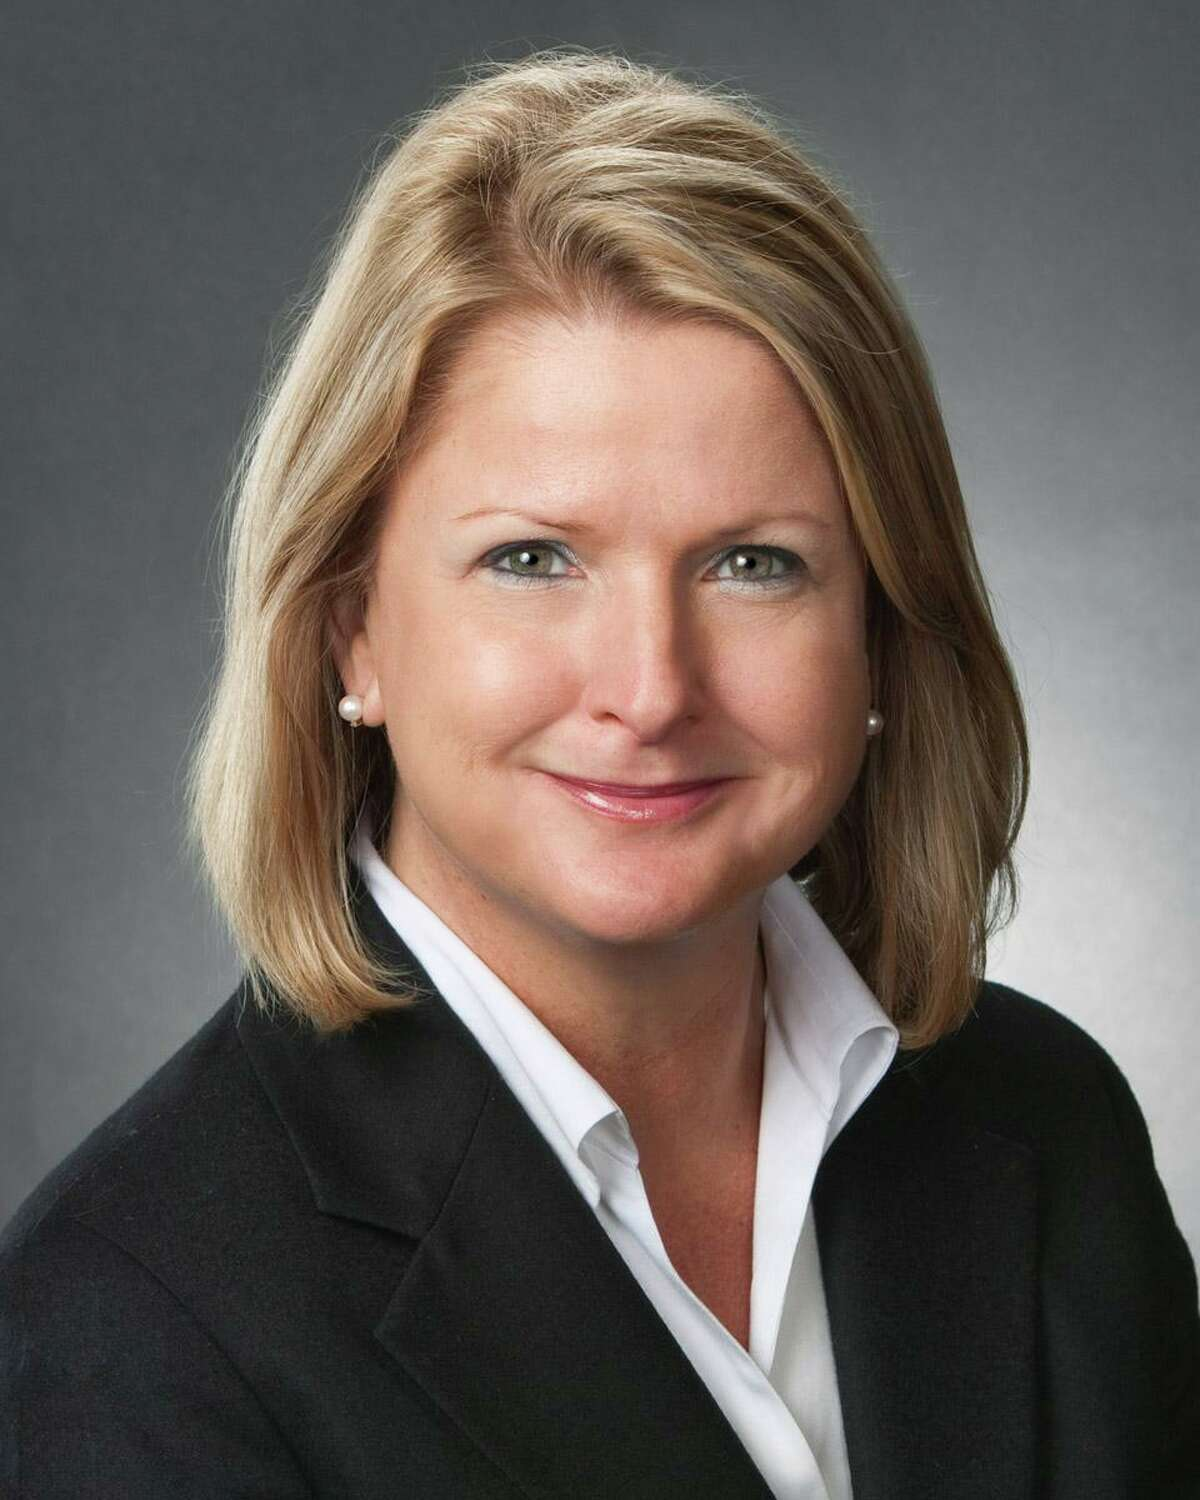 Keri Schmidt, Fort Bend County Chamber of Commerce president and CEO, has been appointed by Fort Bend County Judge KP George to serve as a member of the Gulf Coast Workforce Board.